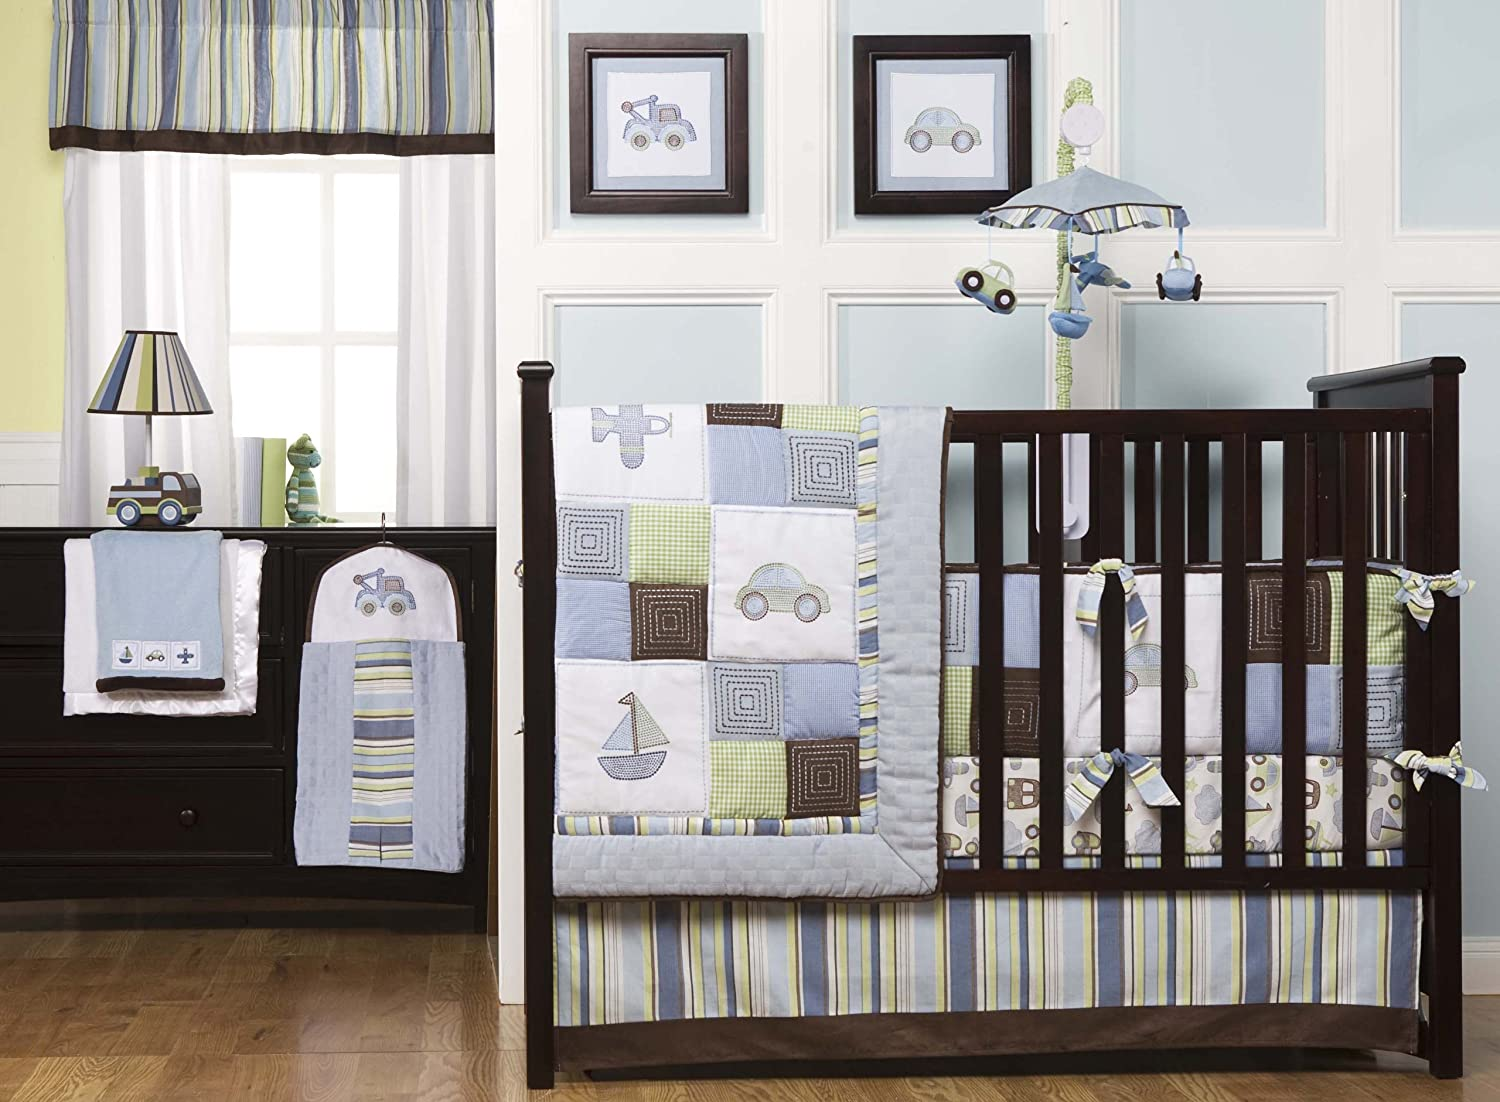 All In One Crib Amazoncom Kids Line 6 Piece Crib Bedding Set Mosaic Transport